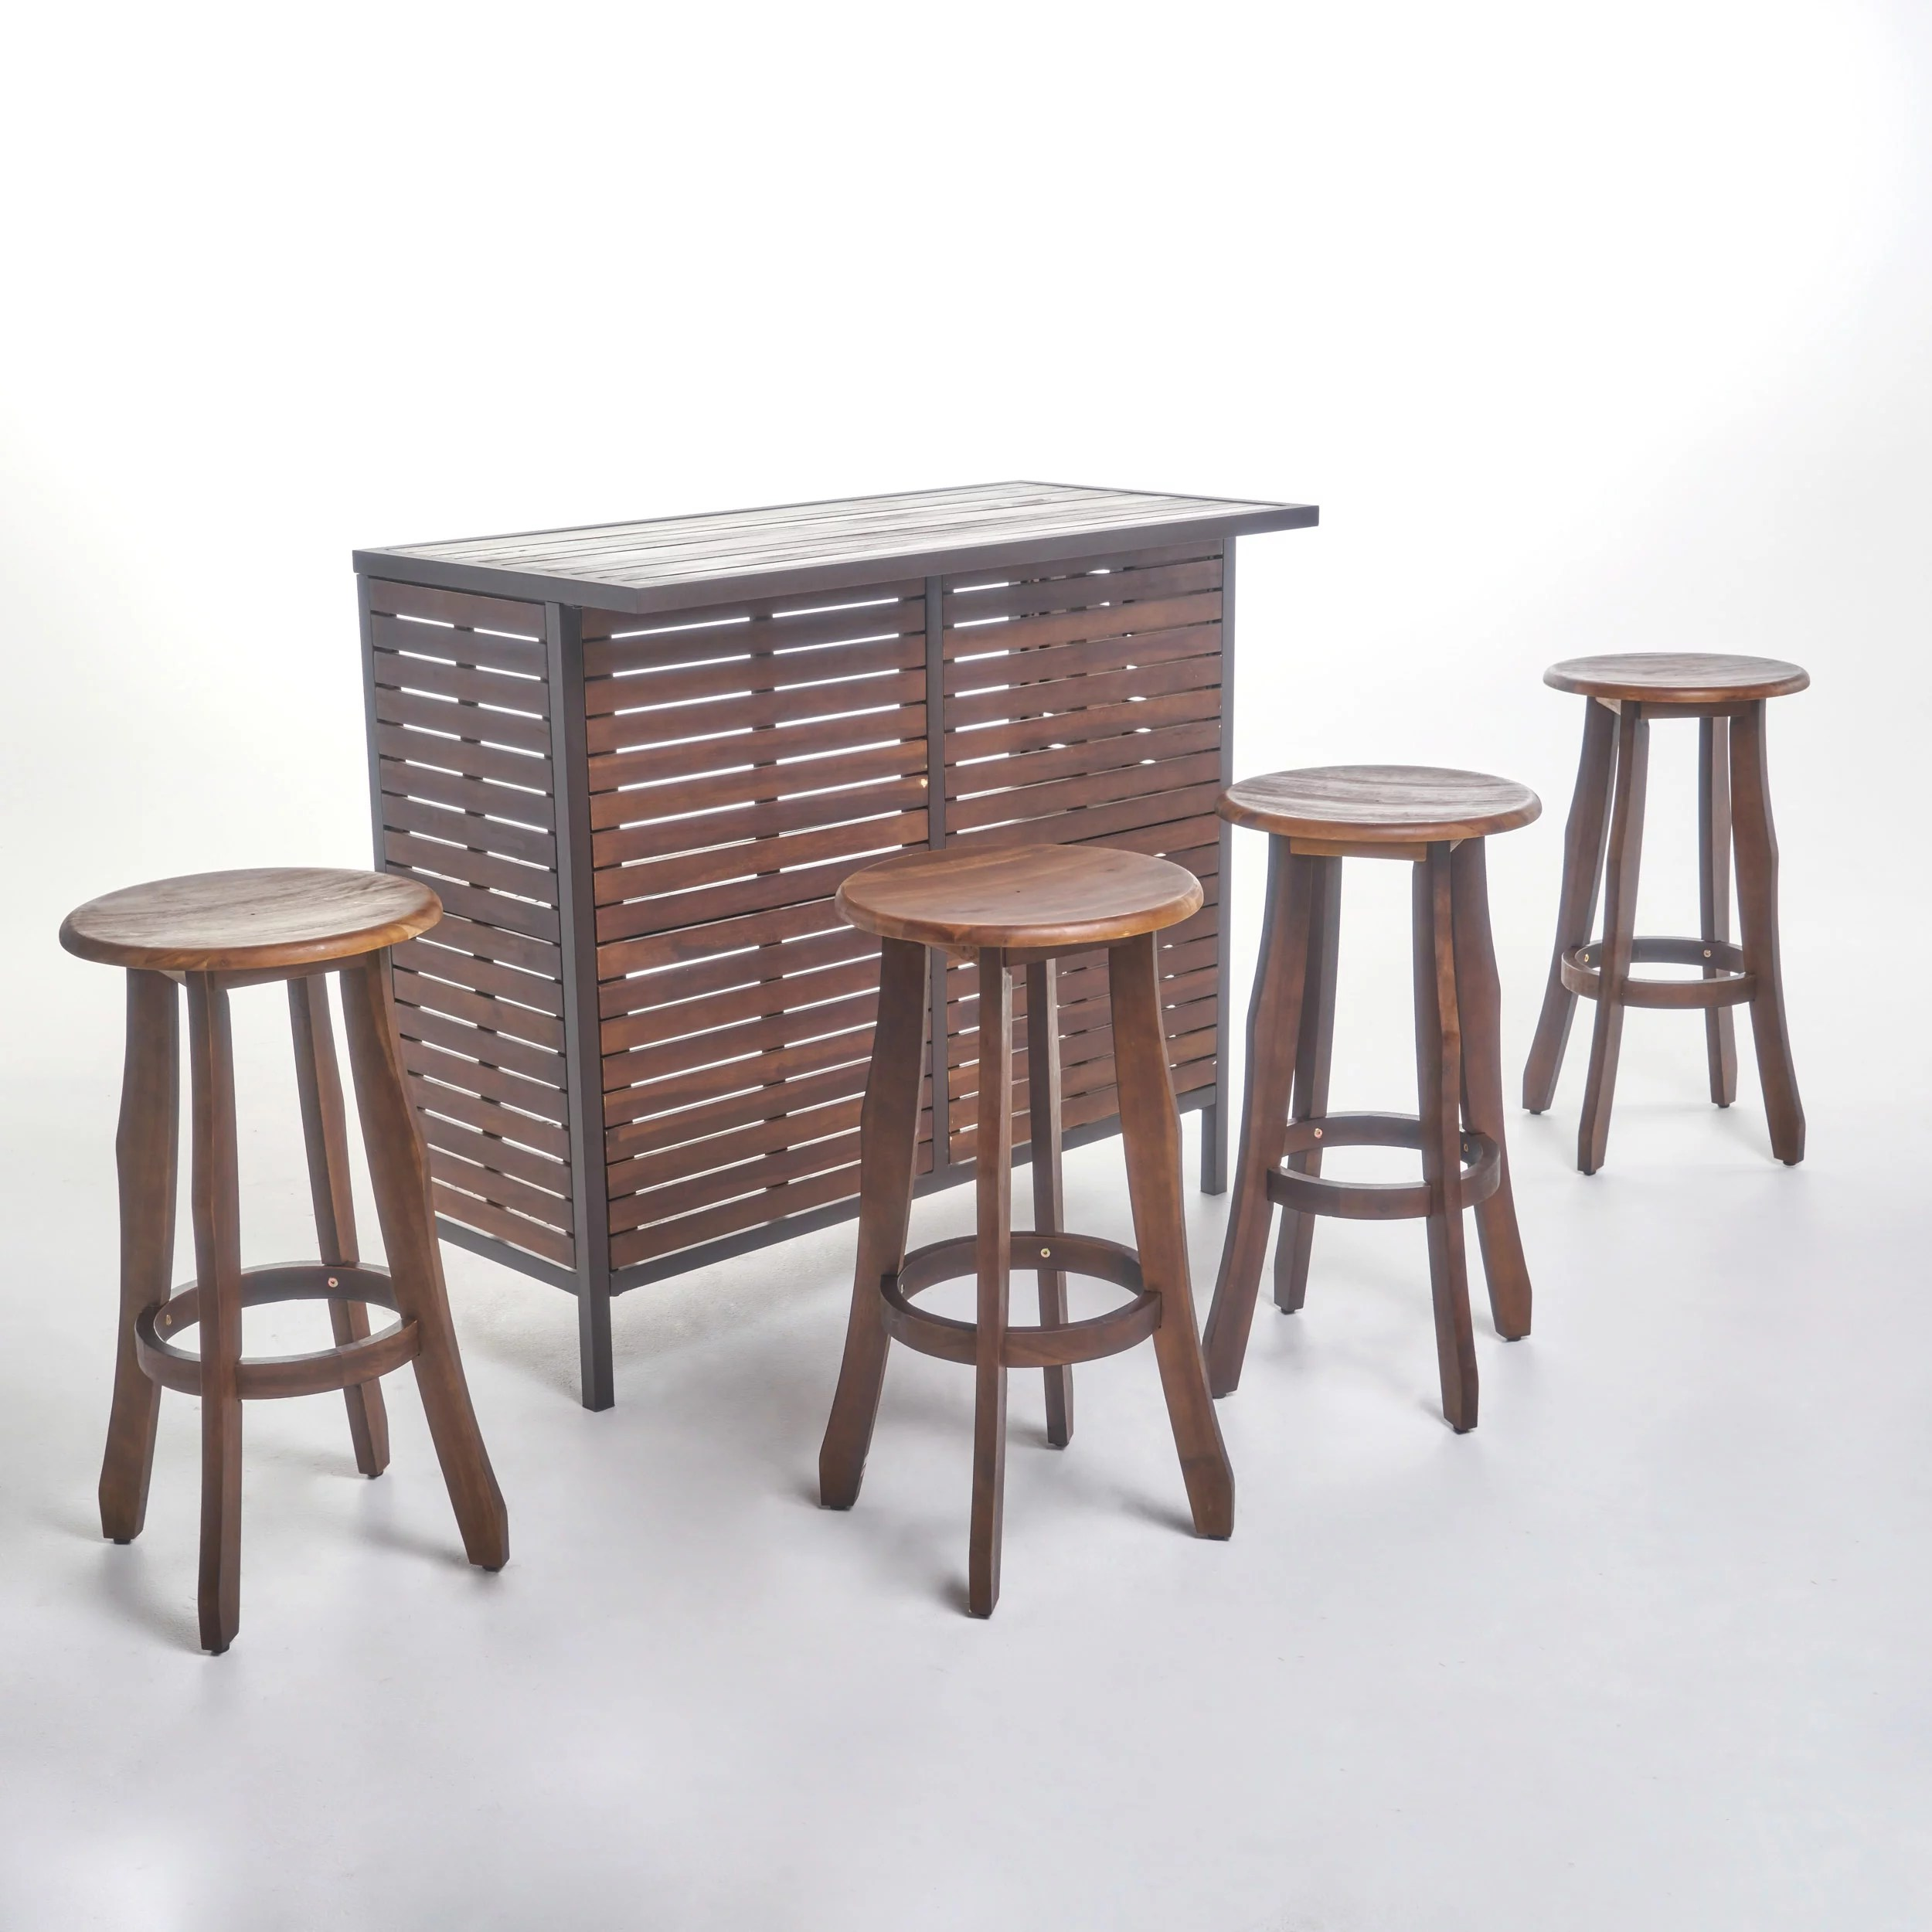 Bar En Pierre Pierre Outdoor 5 Piece Acacia Wood Bar Set Dark Brown Finish